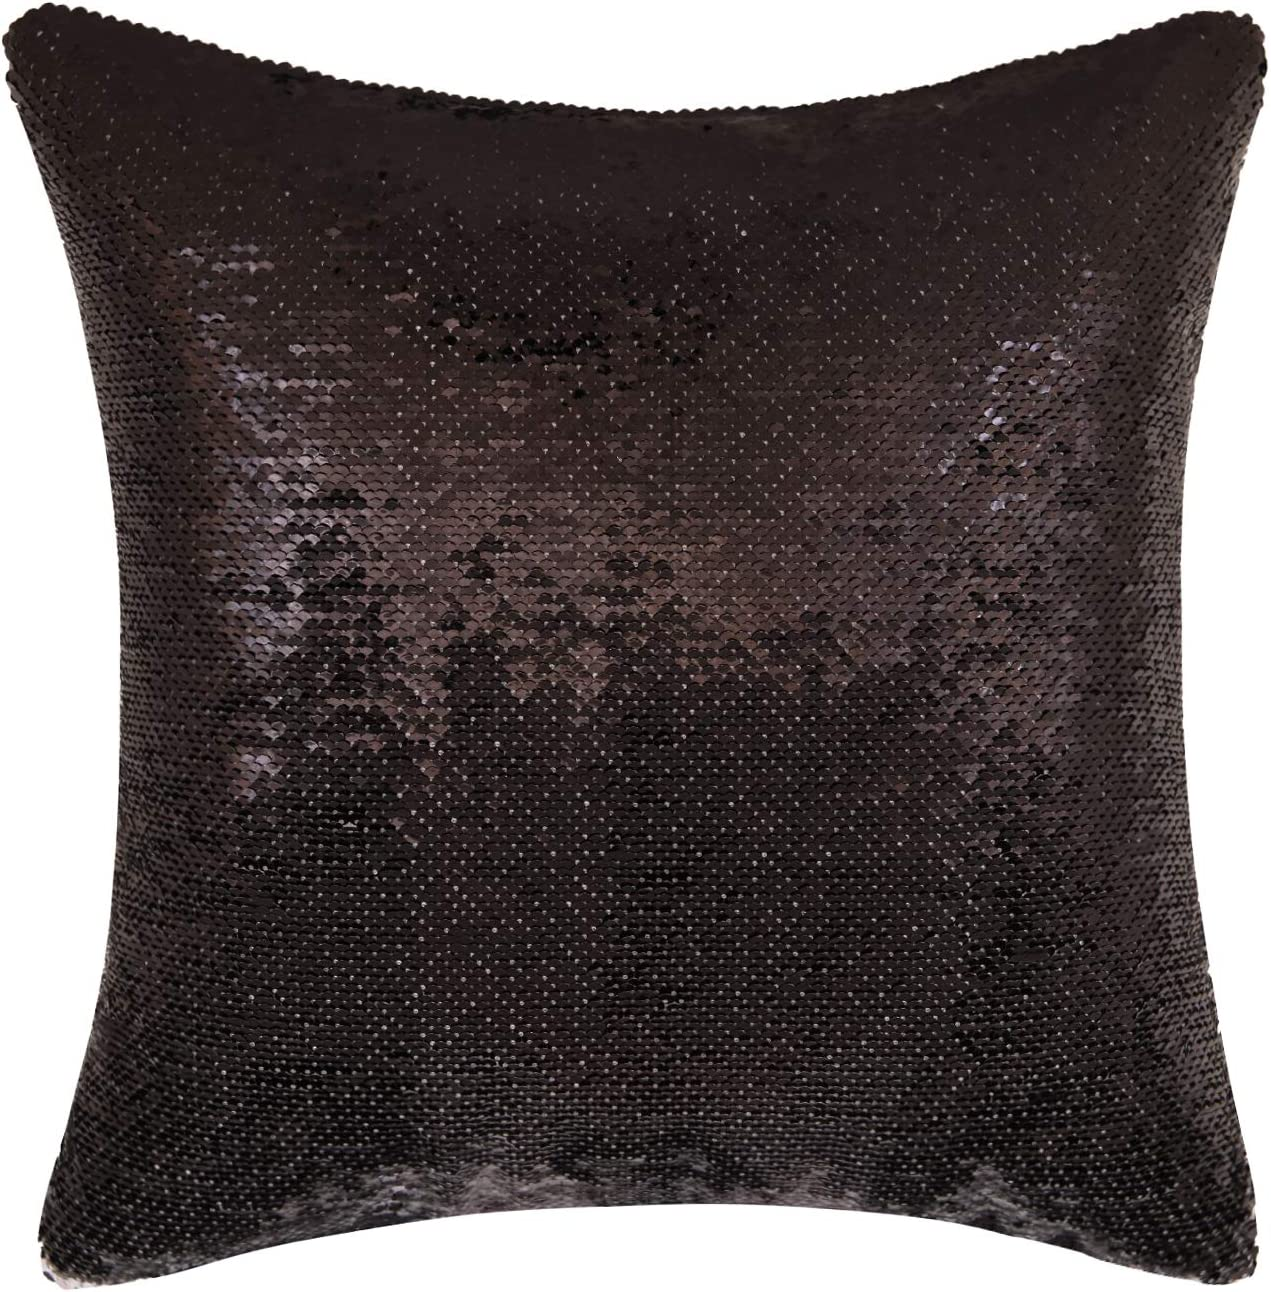 Magic Reversible Throw Pillow Case Without Insert Decor Change Color Pillowcase 16x16 Inches Black K T One Jurassic Park Jeff Goldblum Mermaid Sequins Pillow Cover